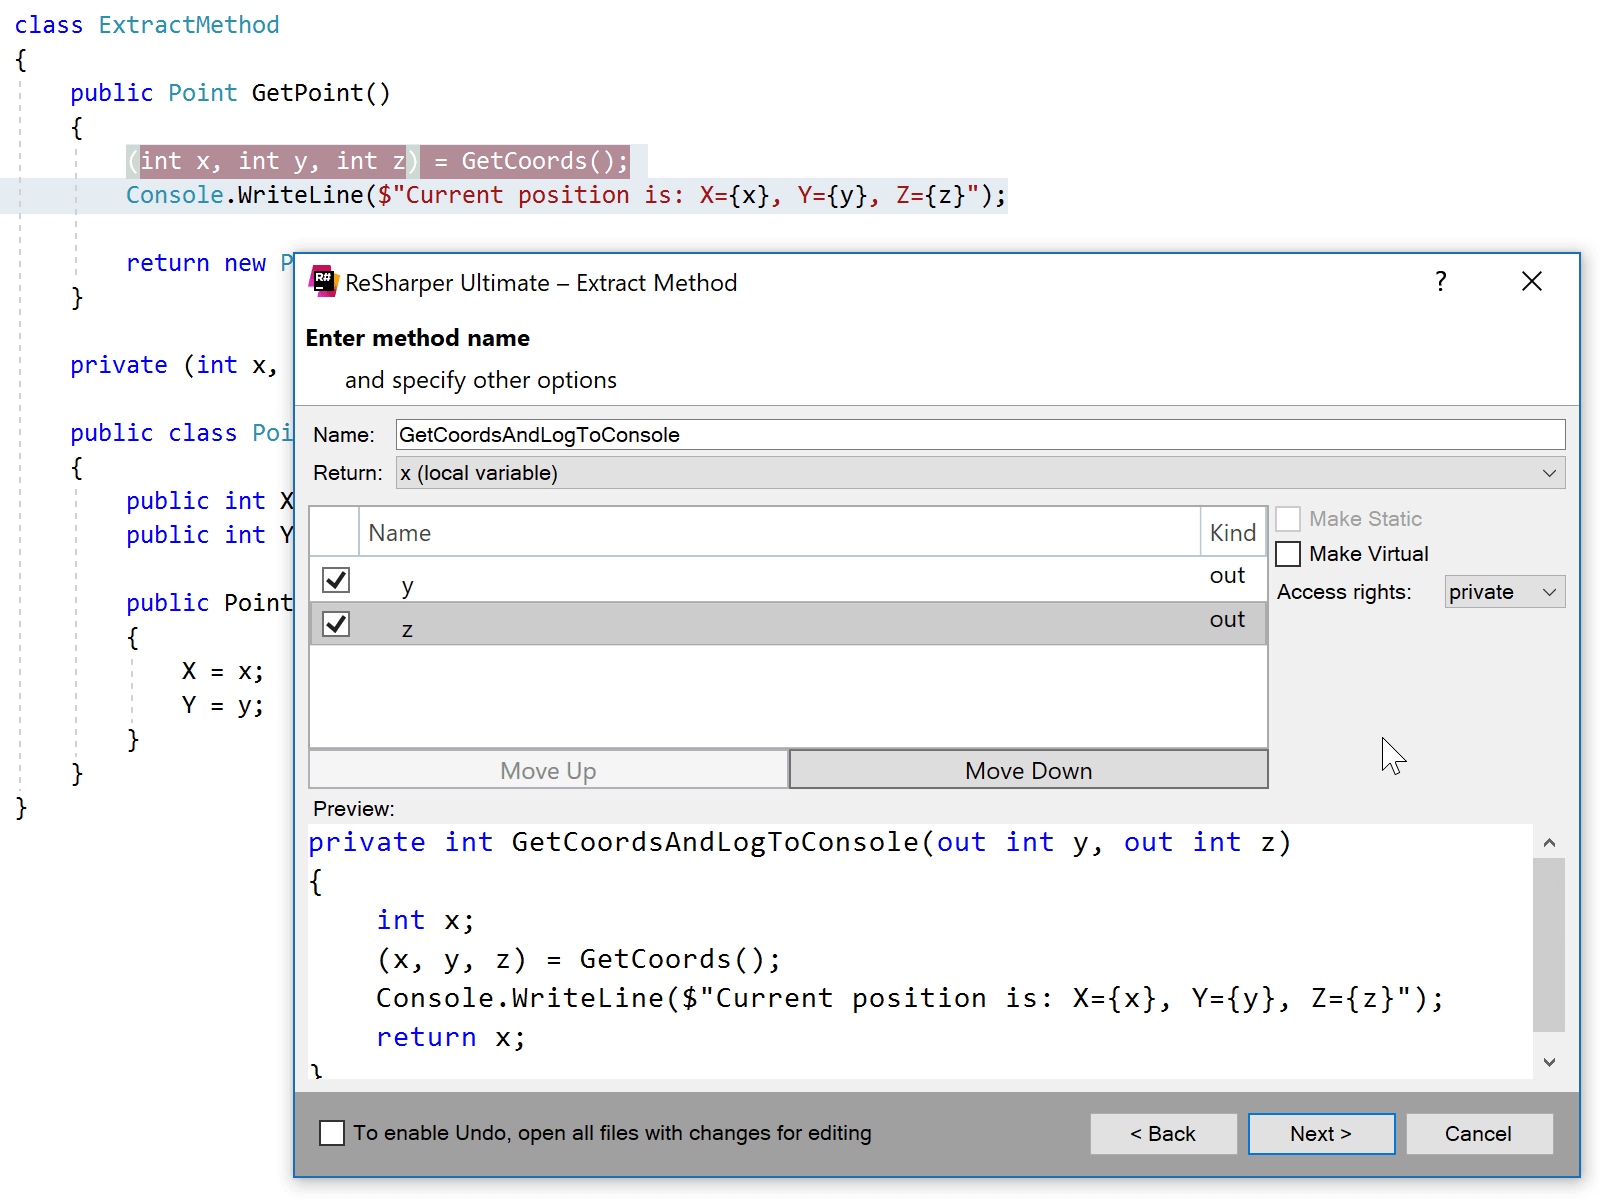 Extract Method respects C# 7.0 syntax options